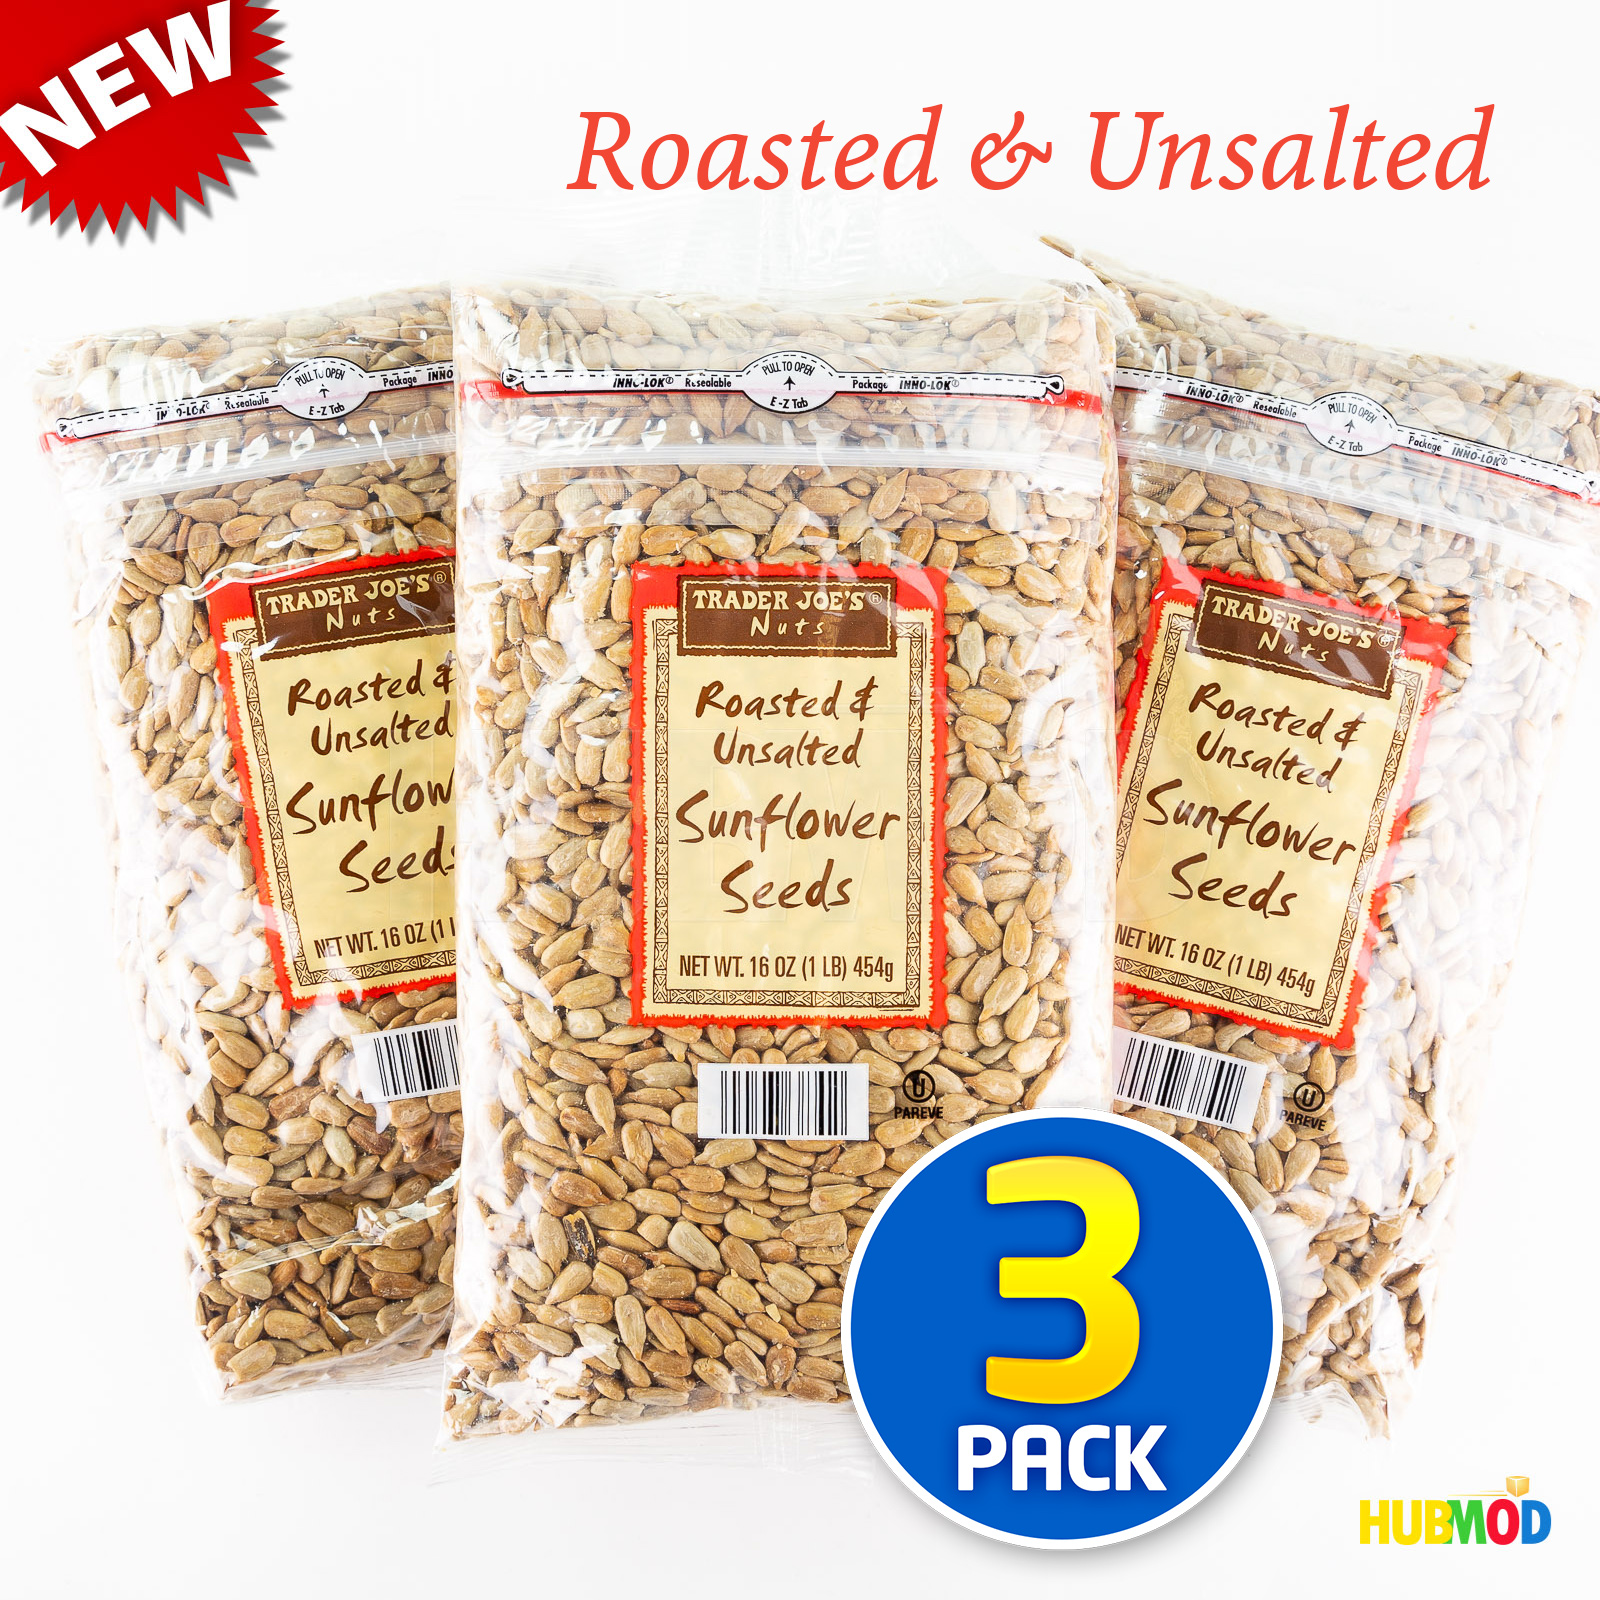 Details About New Trader Joe S Nuts Sunflower Seeds Roasted Unsalted 16oz 1lb Bag 3 Pack